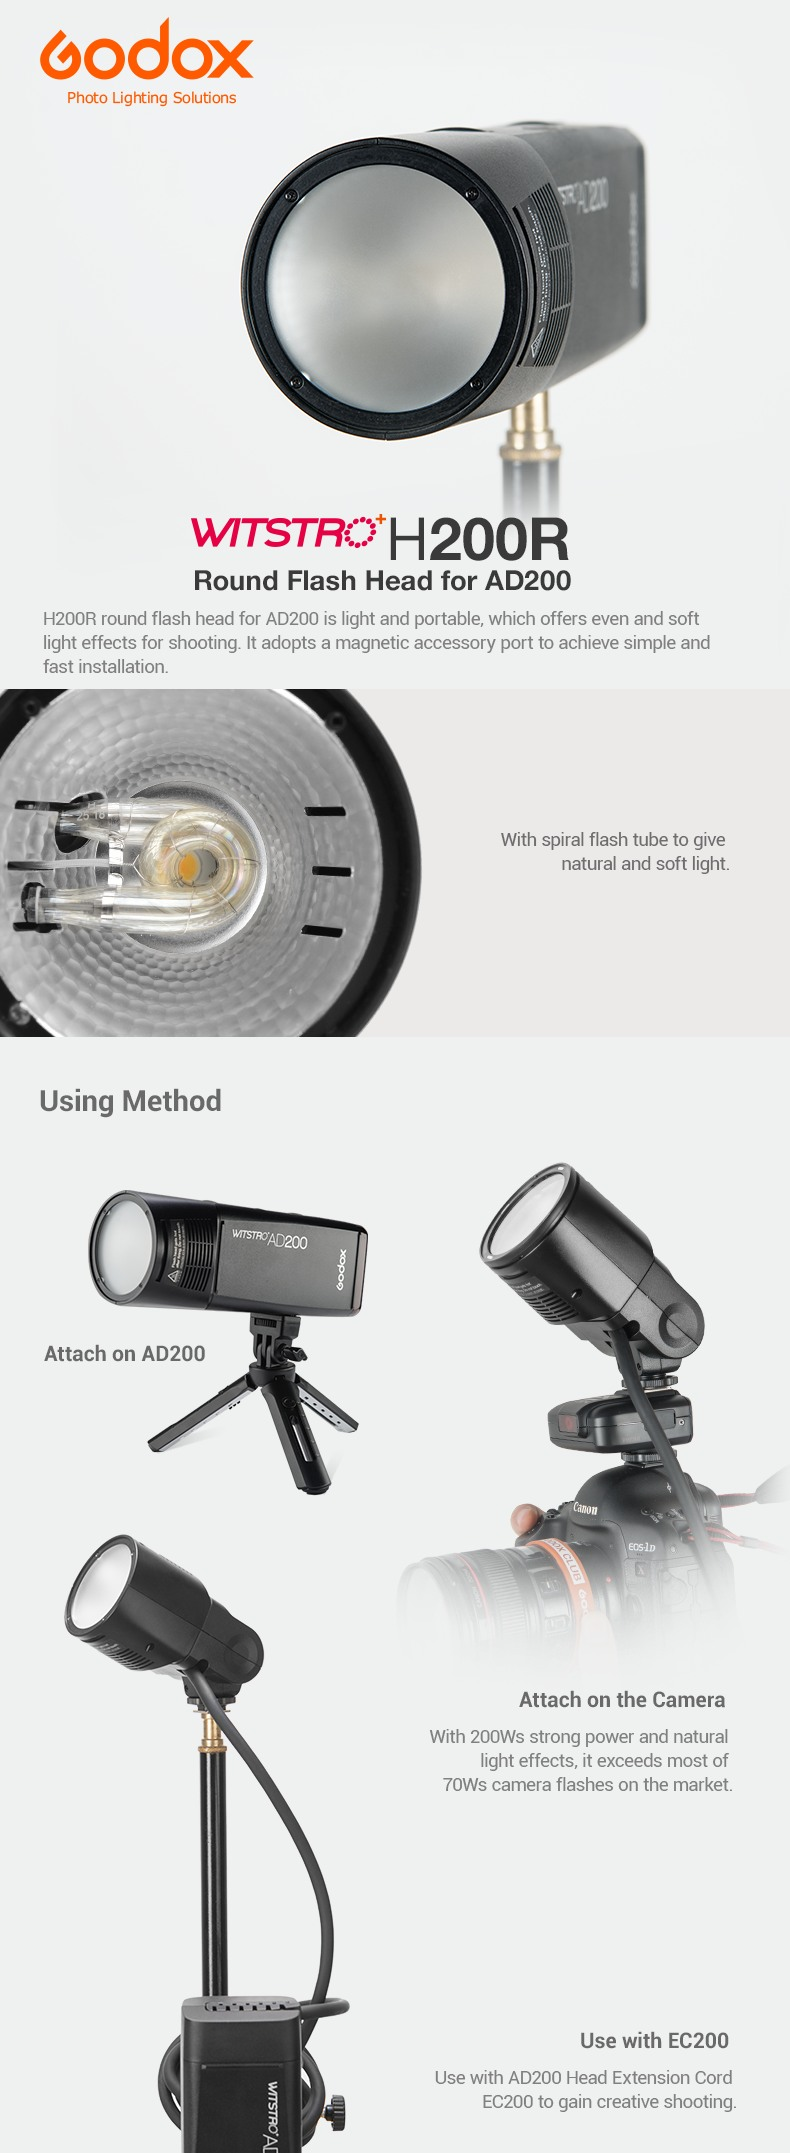 Godox H200R Round Flash Head for AD200  Using Methods, usage iwth EC200